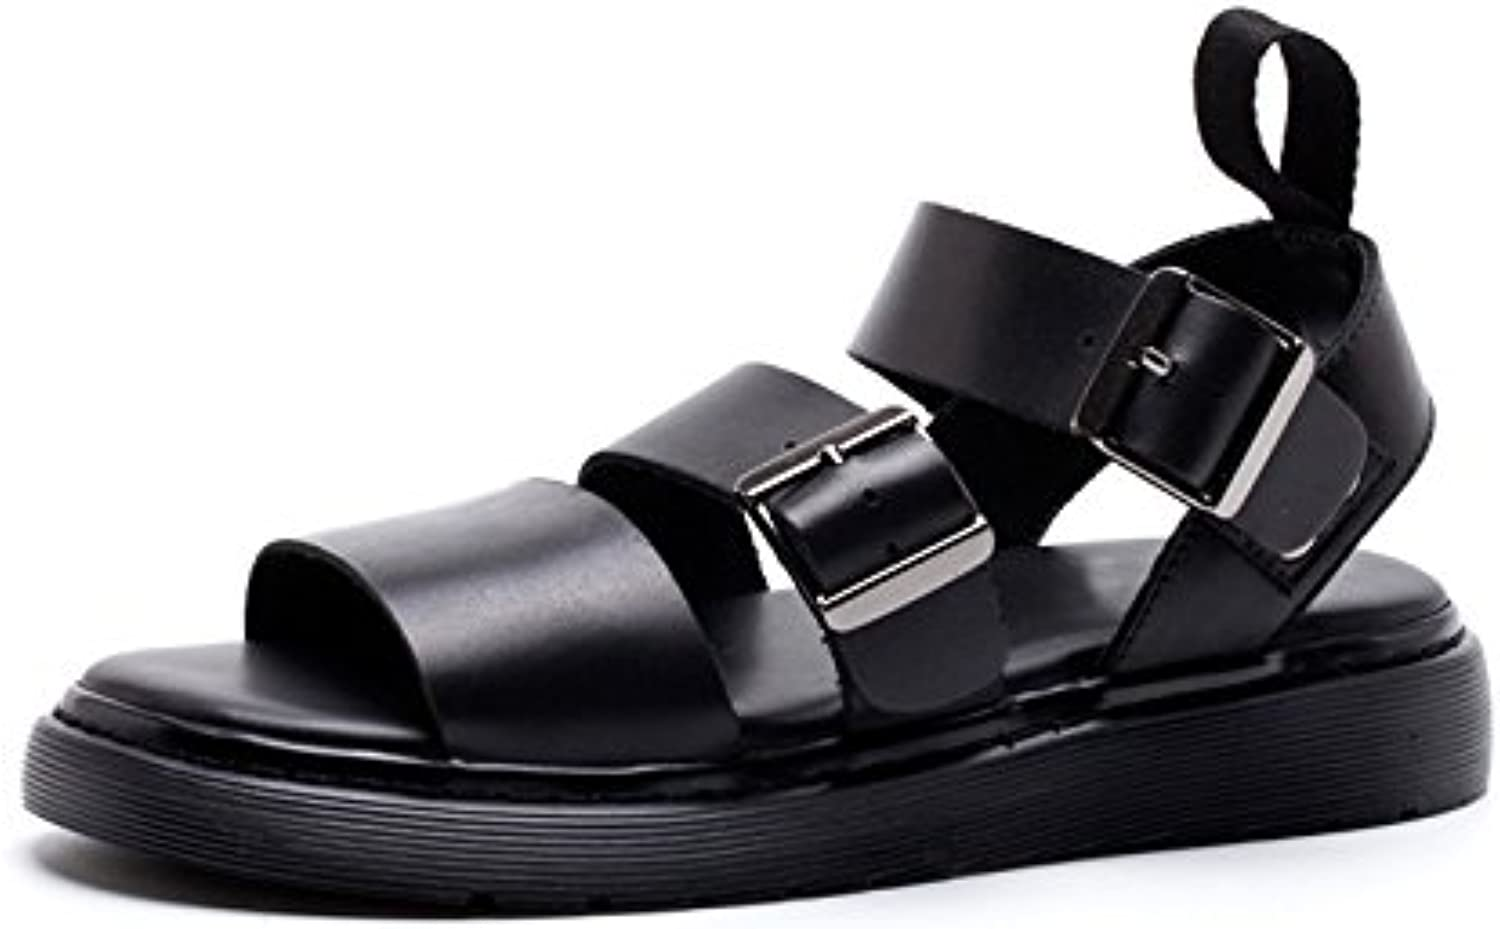 Men's sandals leather casual shoes soled sandals